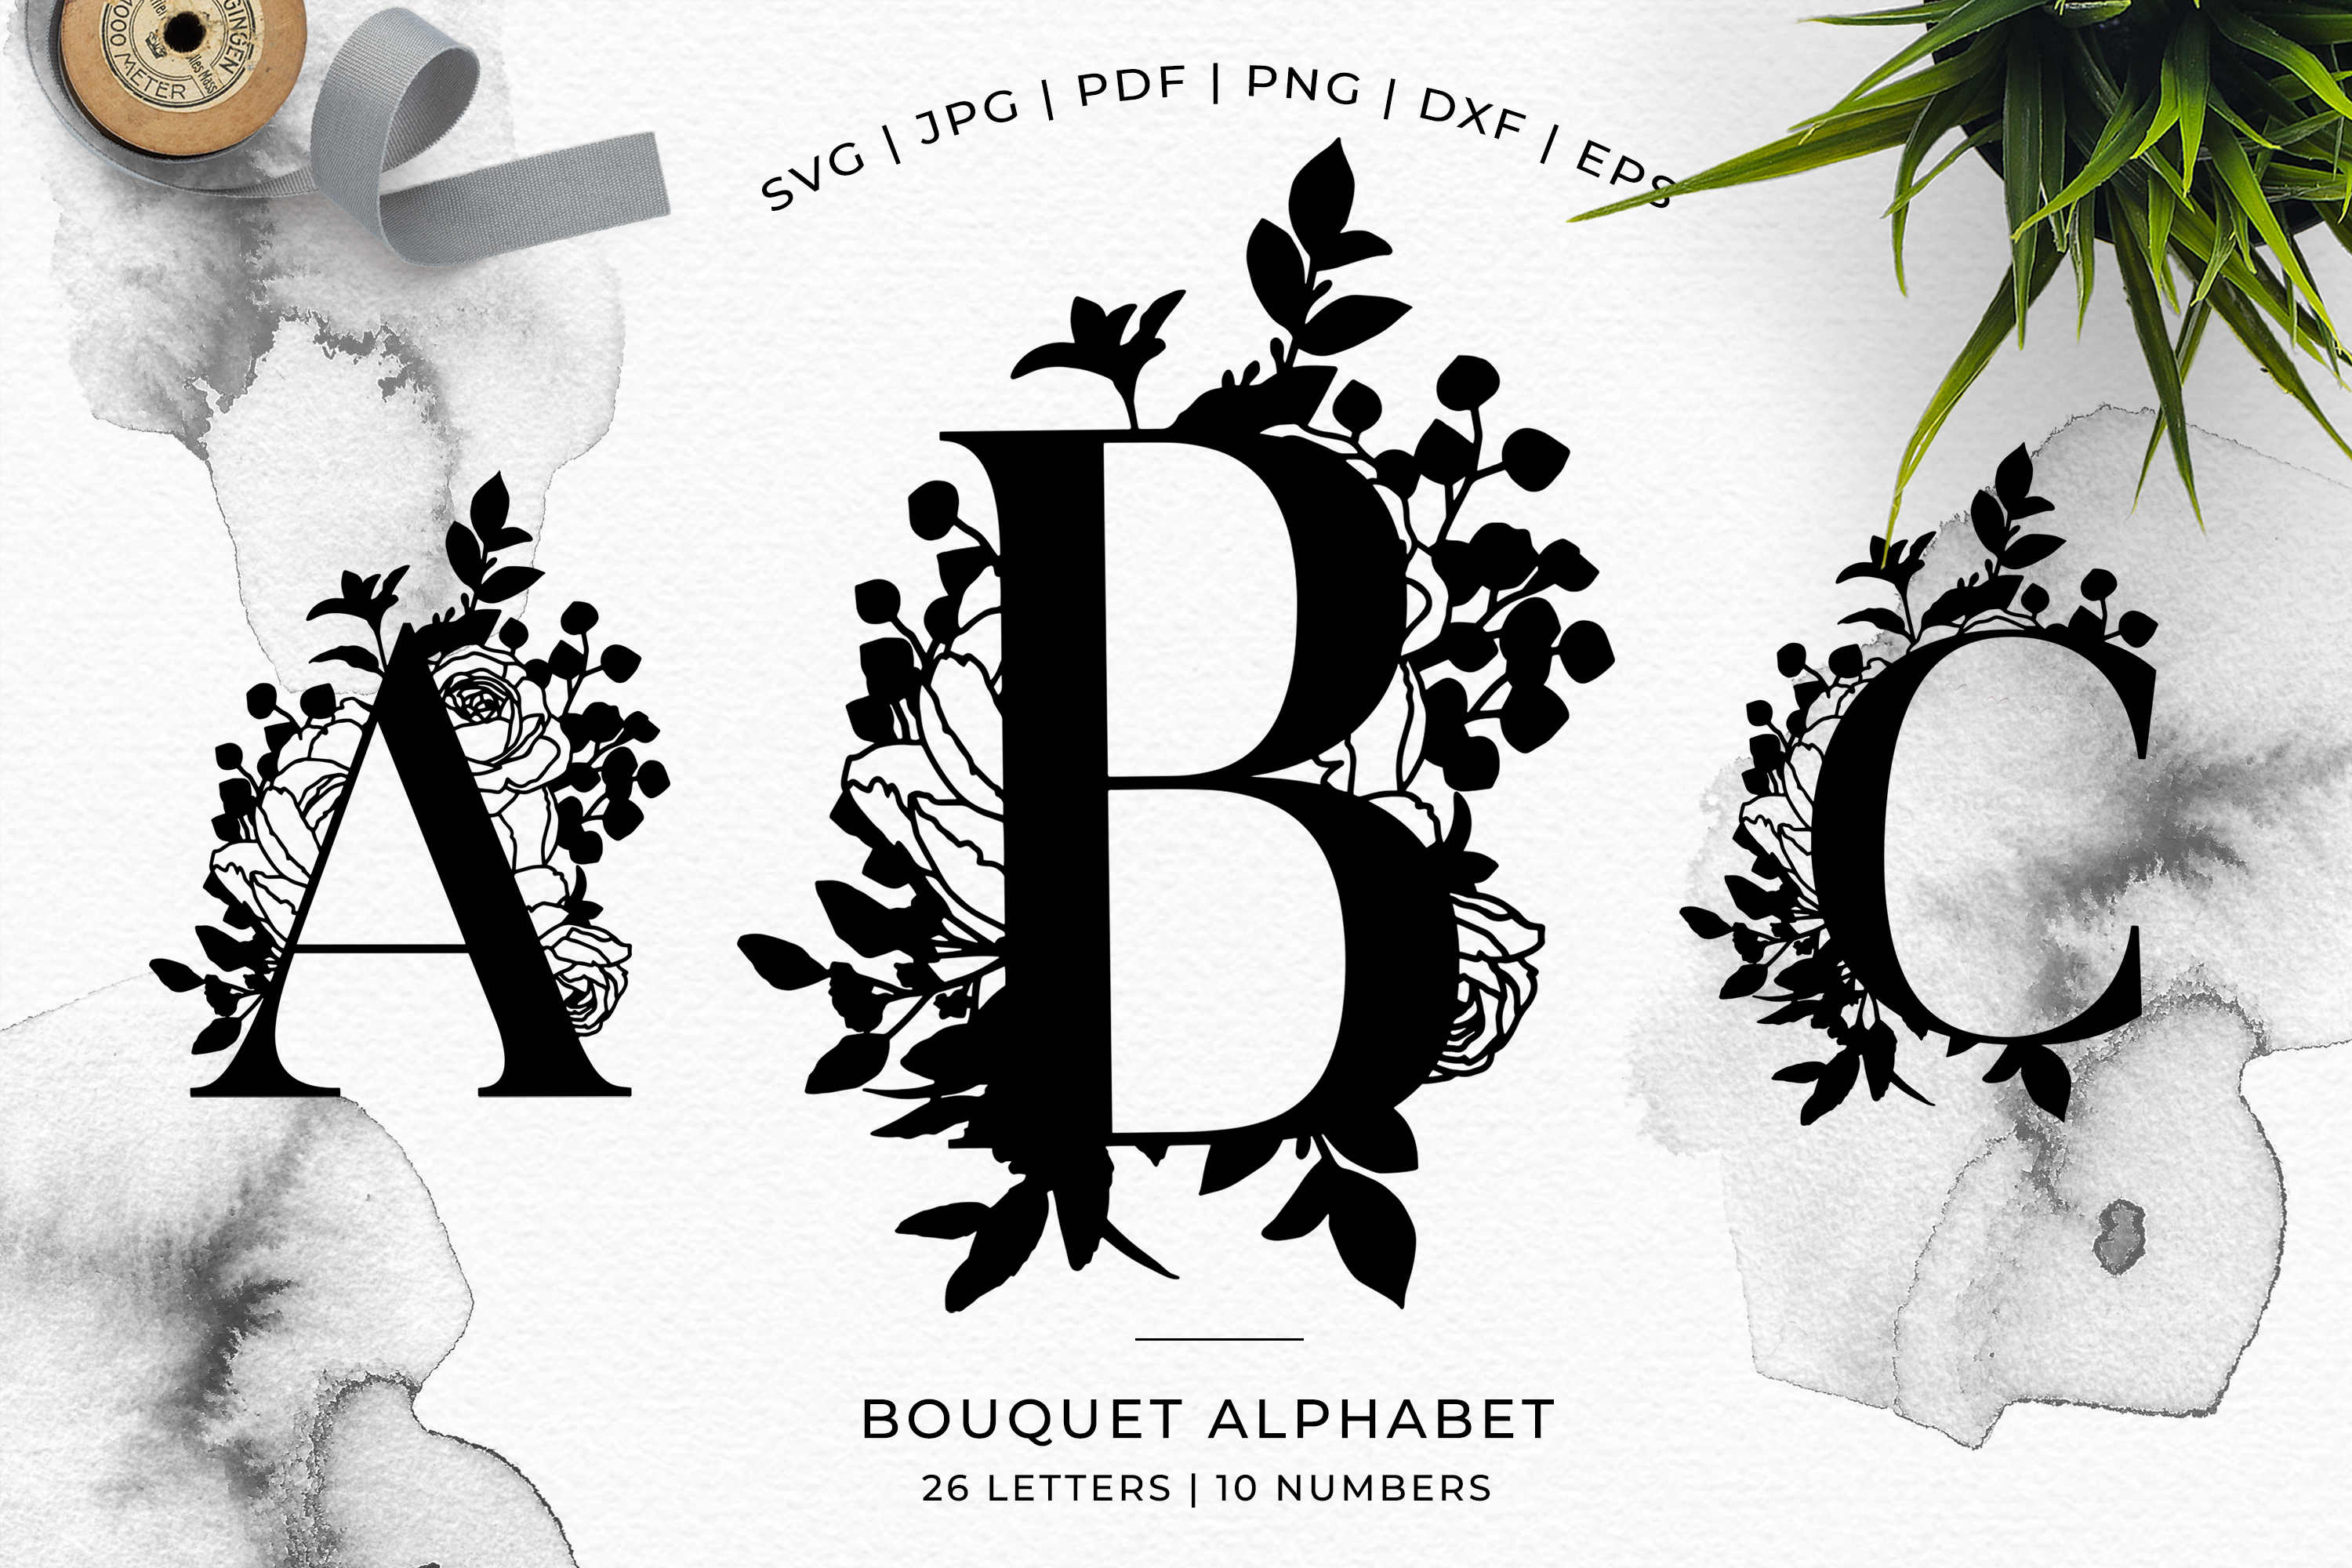 Bouquet Alphabet - Papercutting SVG DXF PNG EPS JPG PDF example image 5